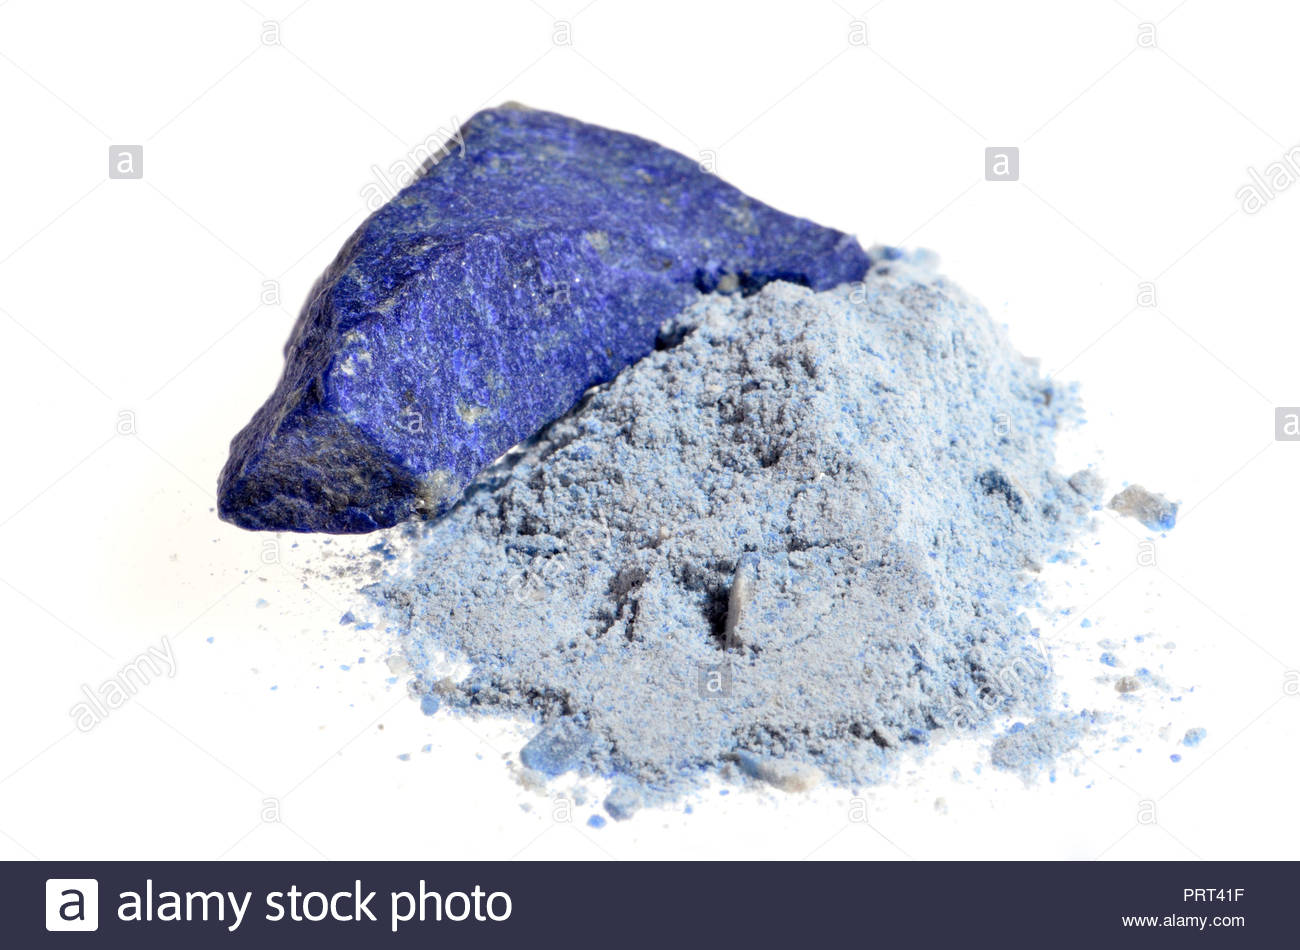 Lapis Lazuli - powdered form used in production of blue pigments - Stock Image